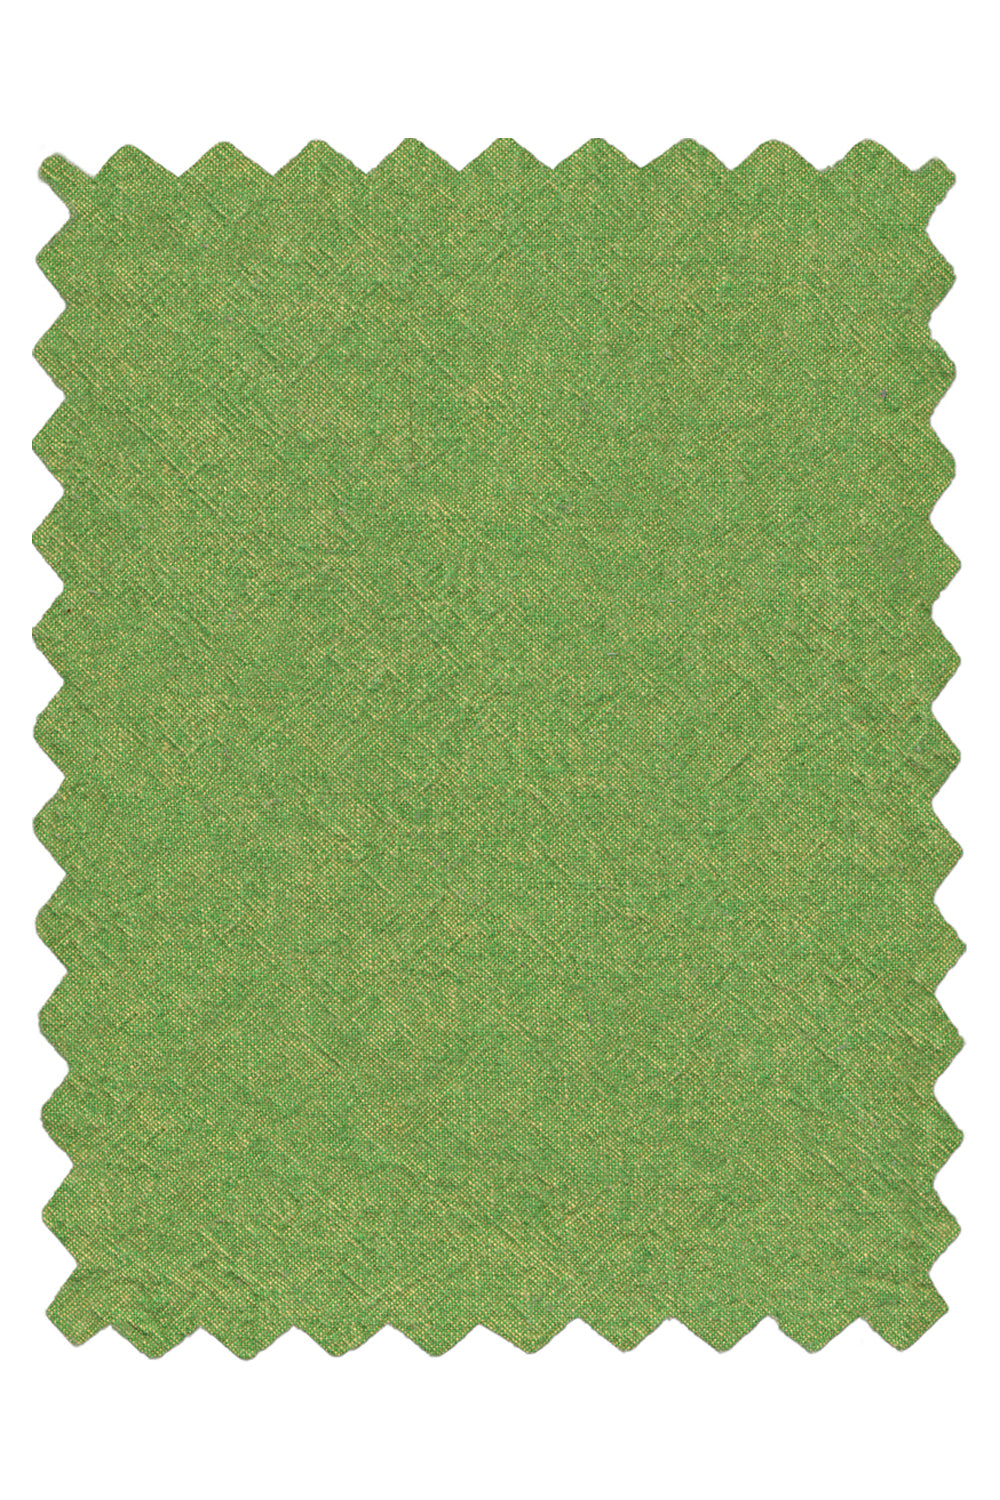 Linen Union in English Yellow + Antibes Green